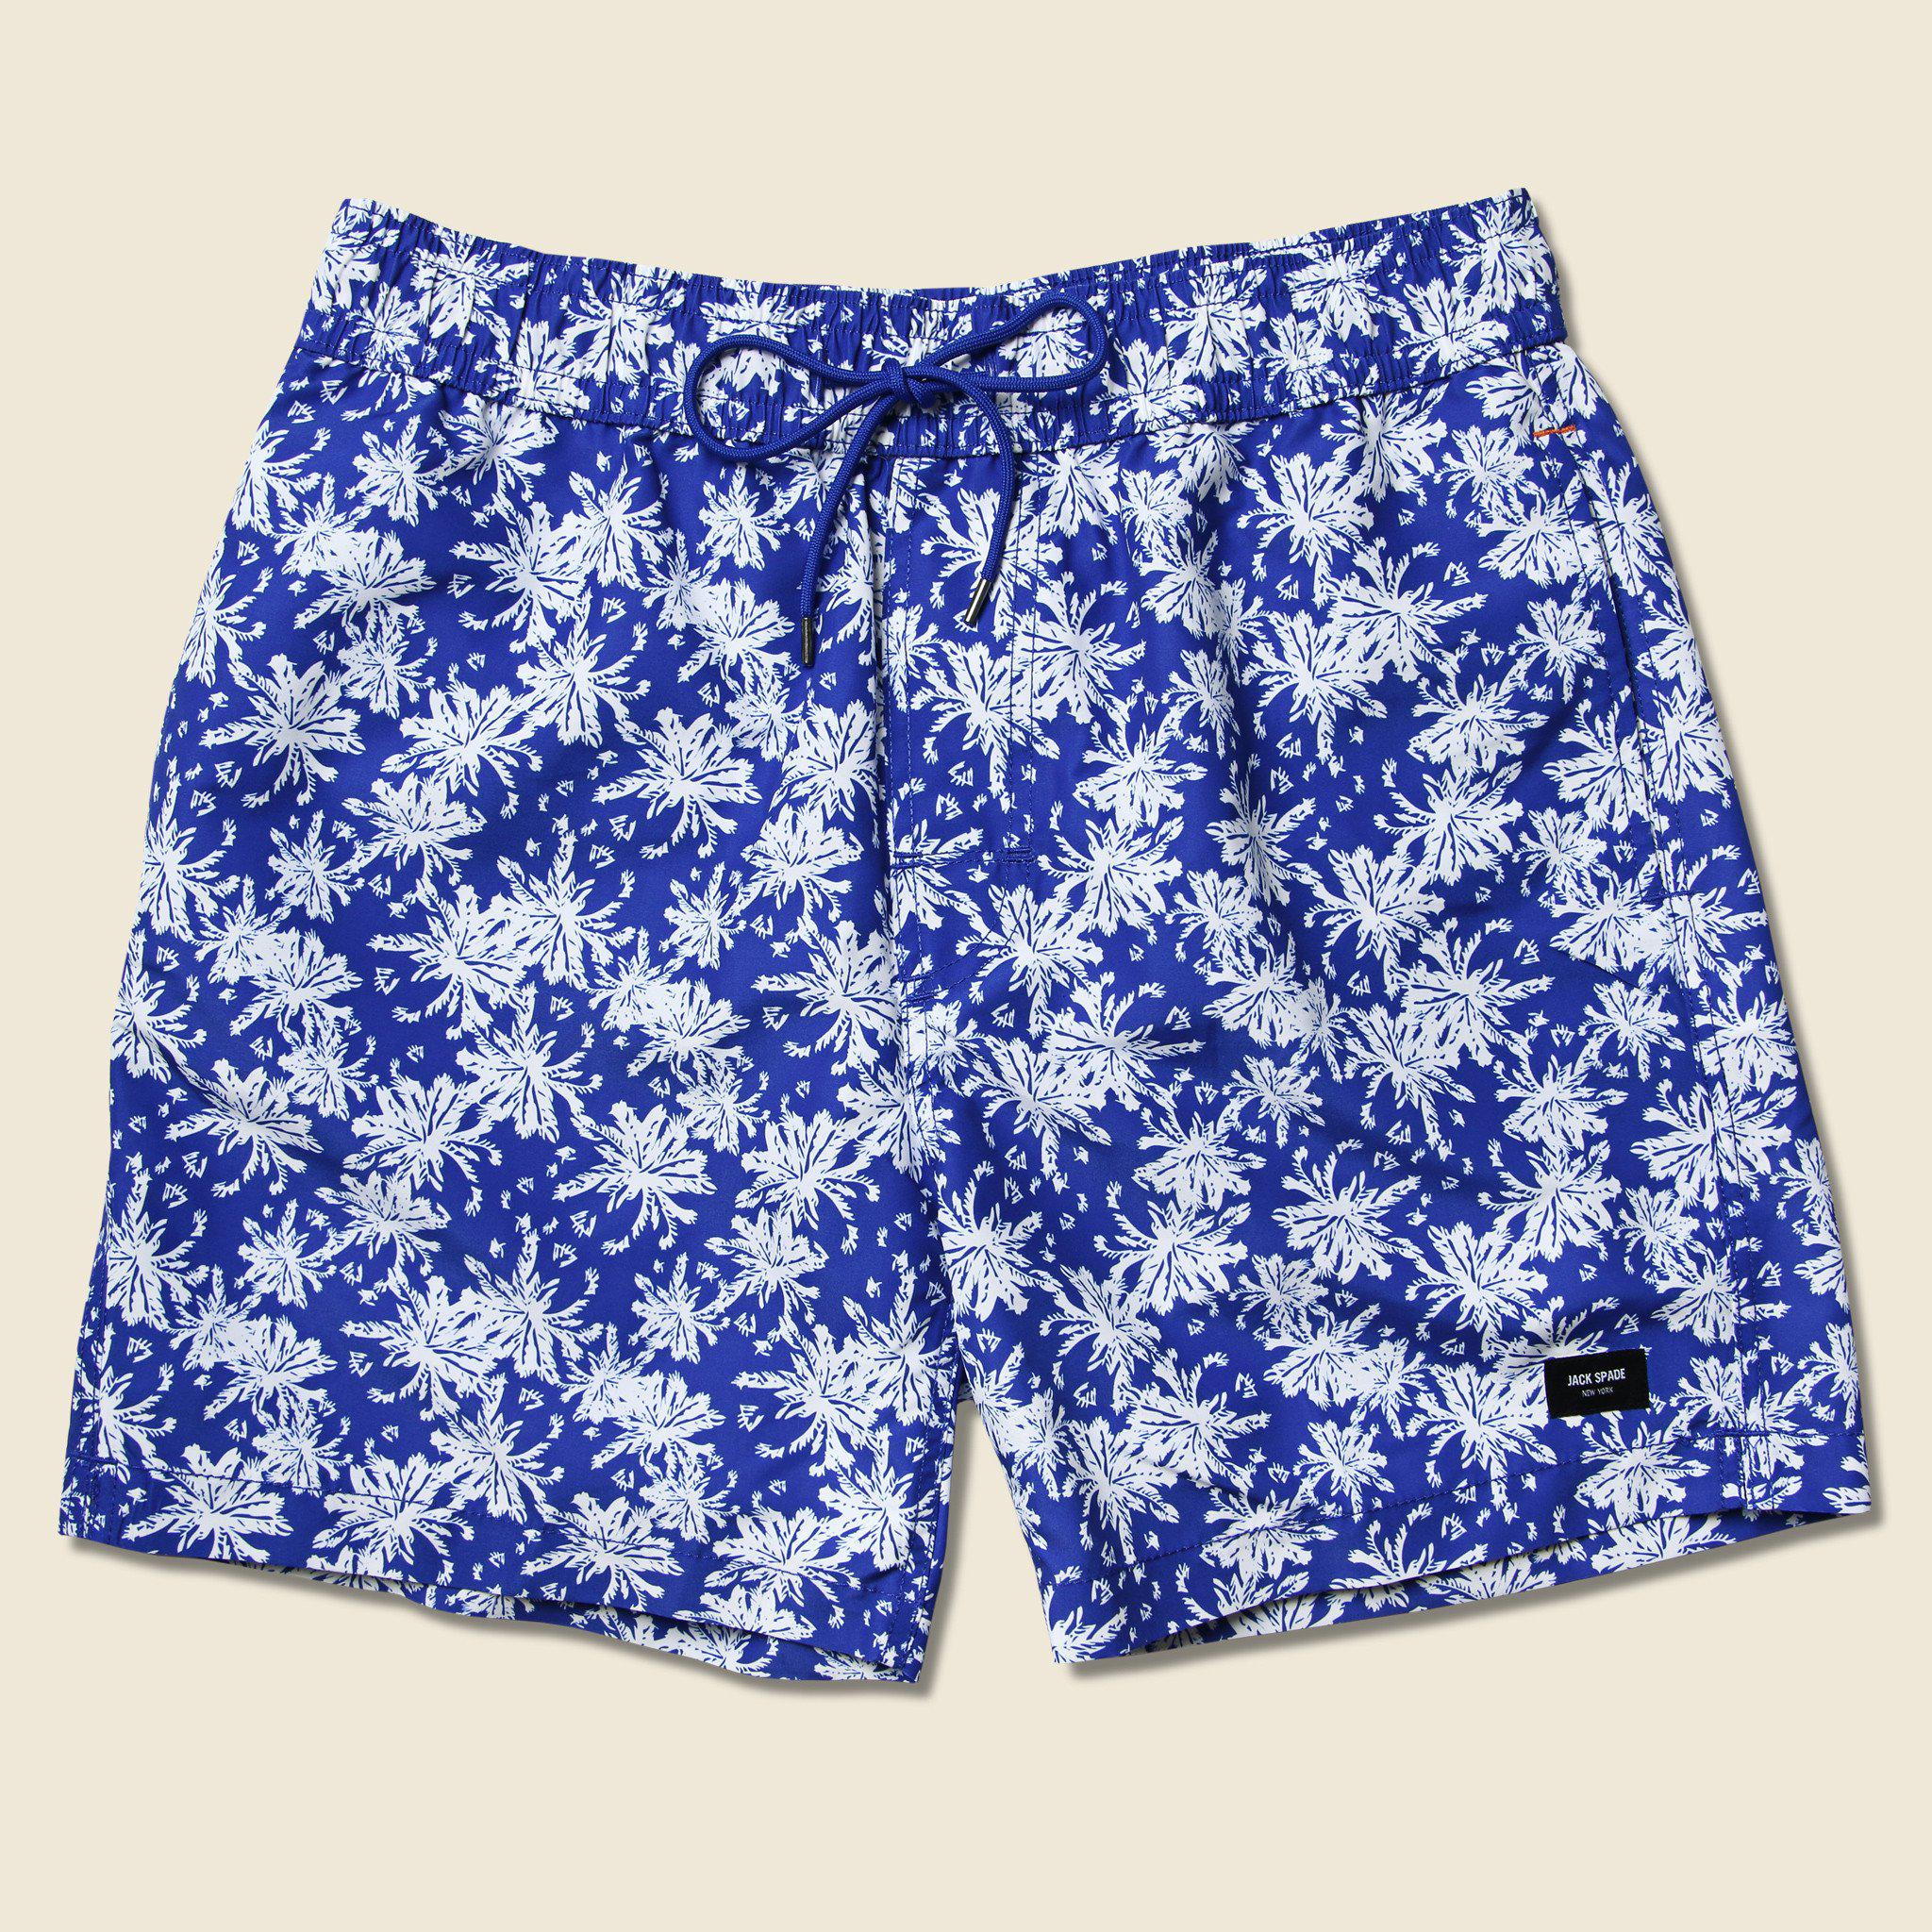 c34d15f7dbb87 Lyst - Jack Spade Floral Grannis Swim Trunk - Blue in Blue for Men